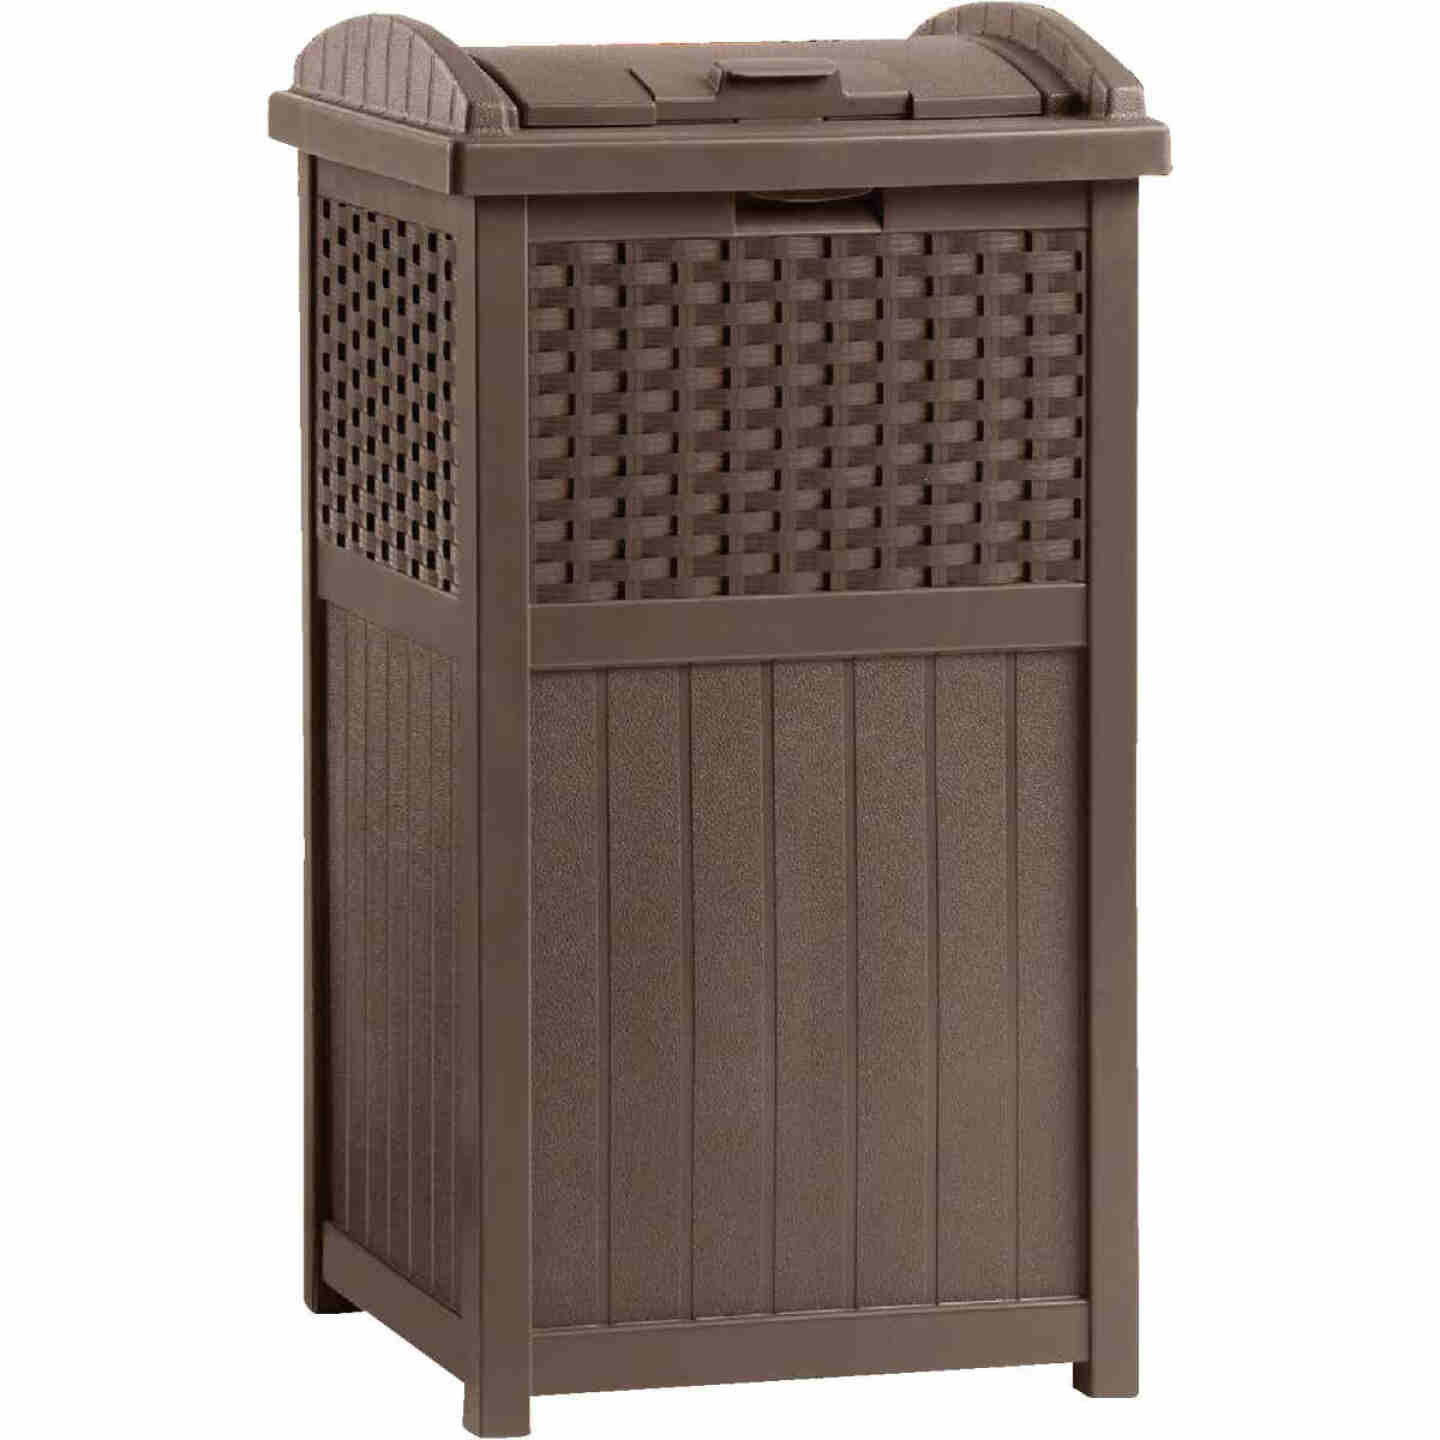 Suncast 30 to 33 Gal. Brown Trash Can with Lid Image 1